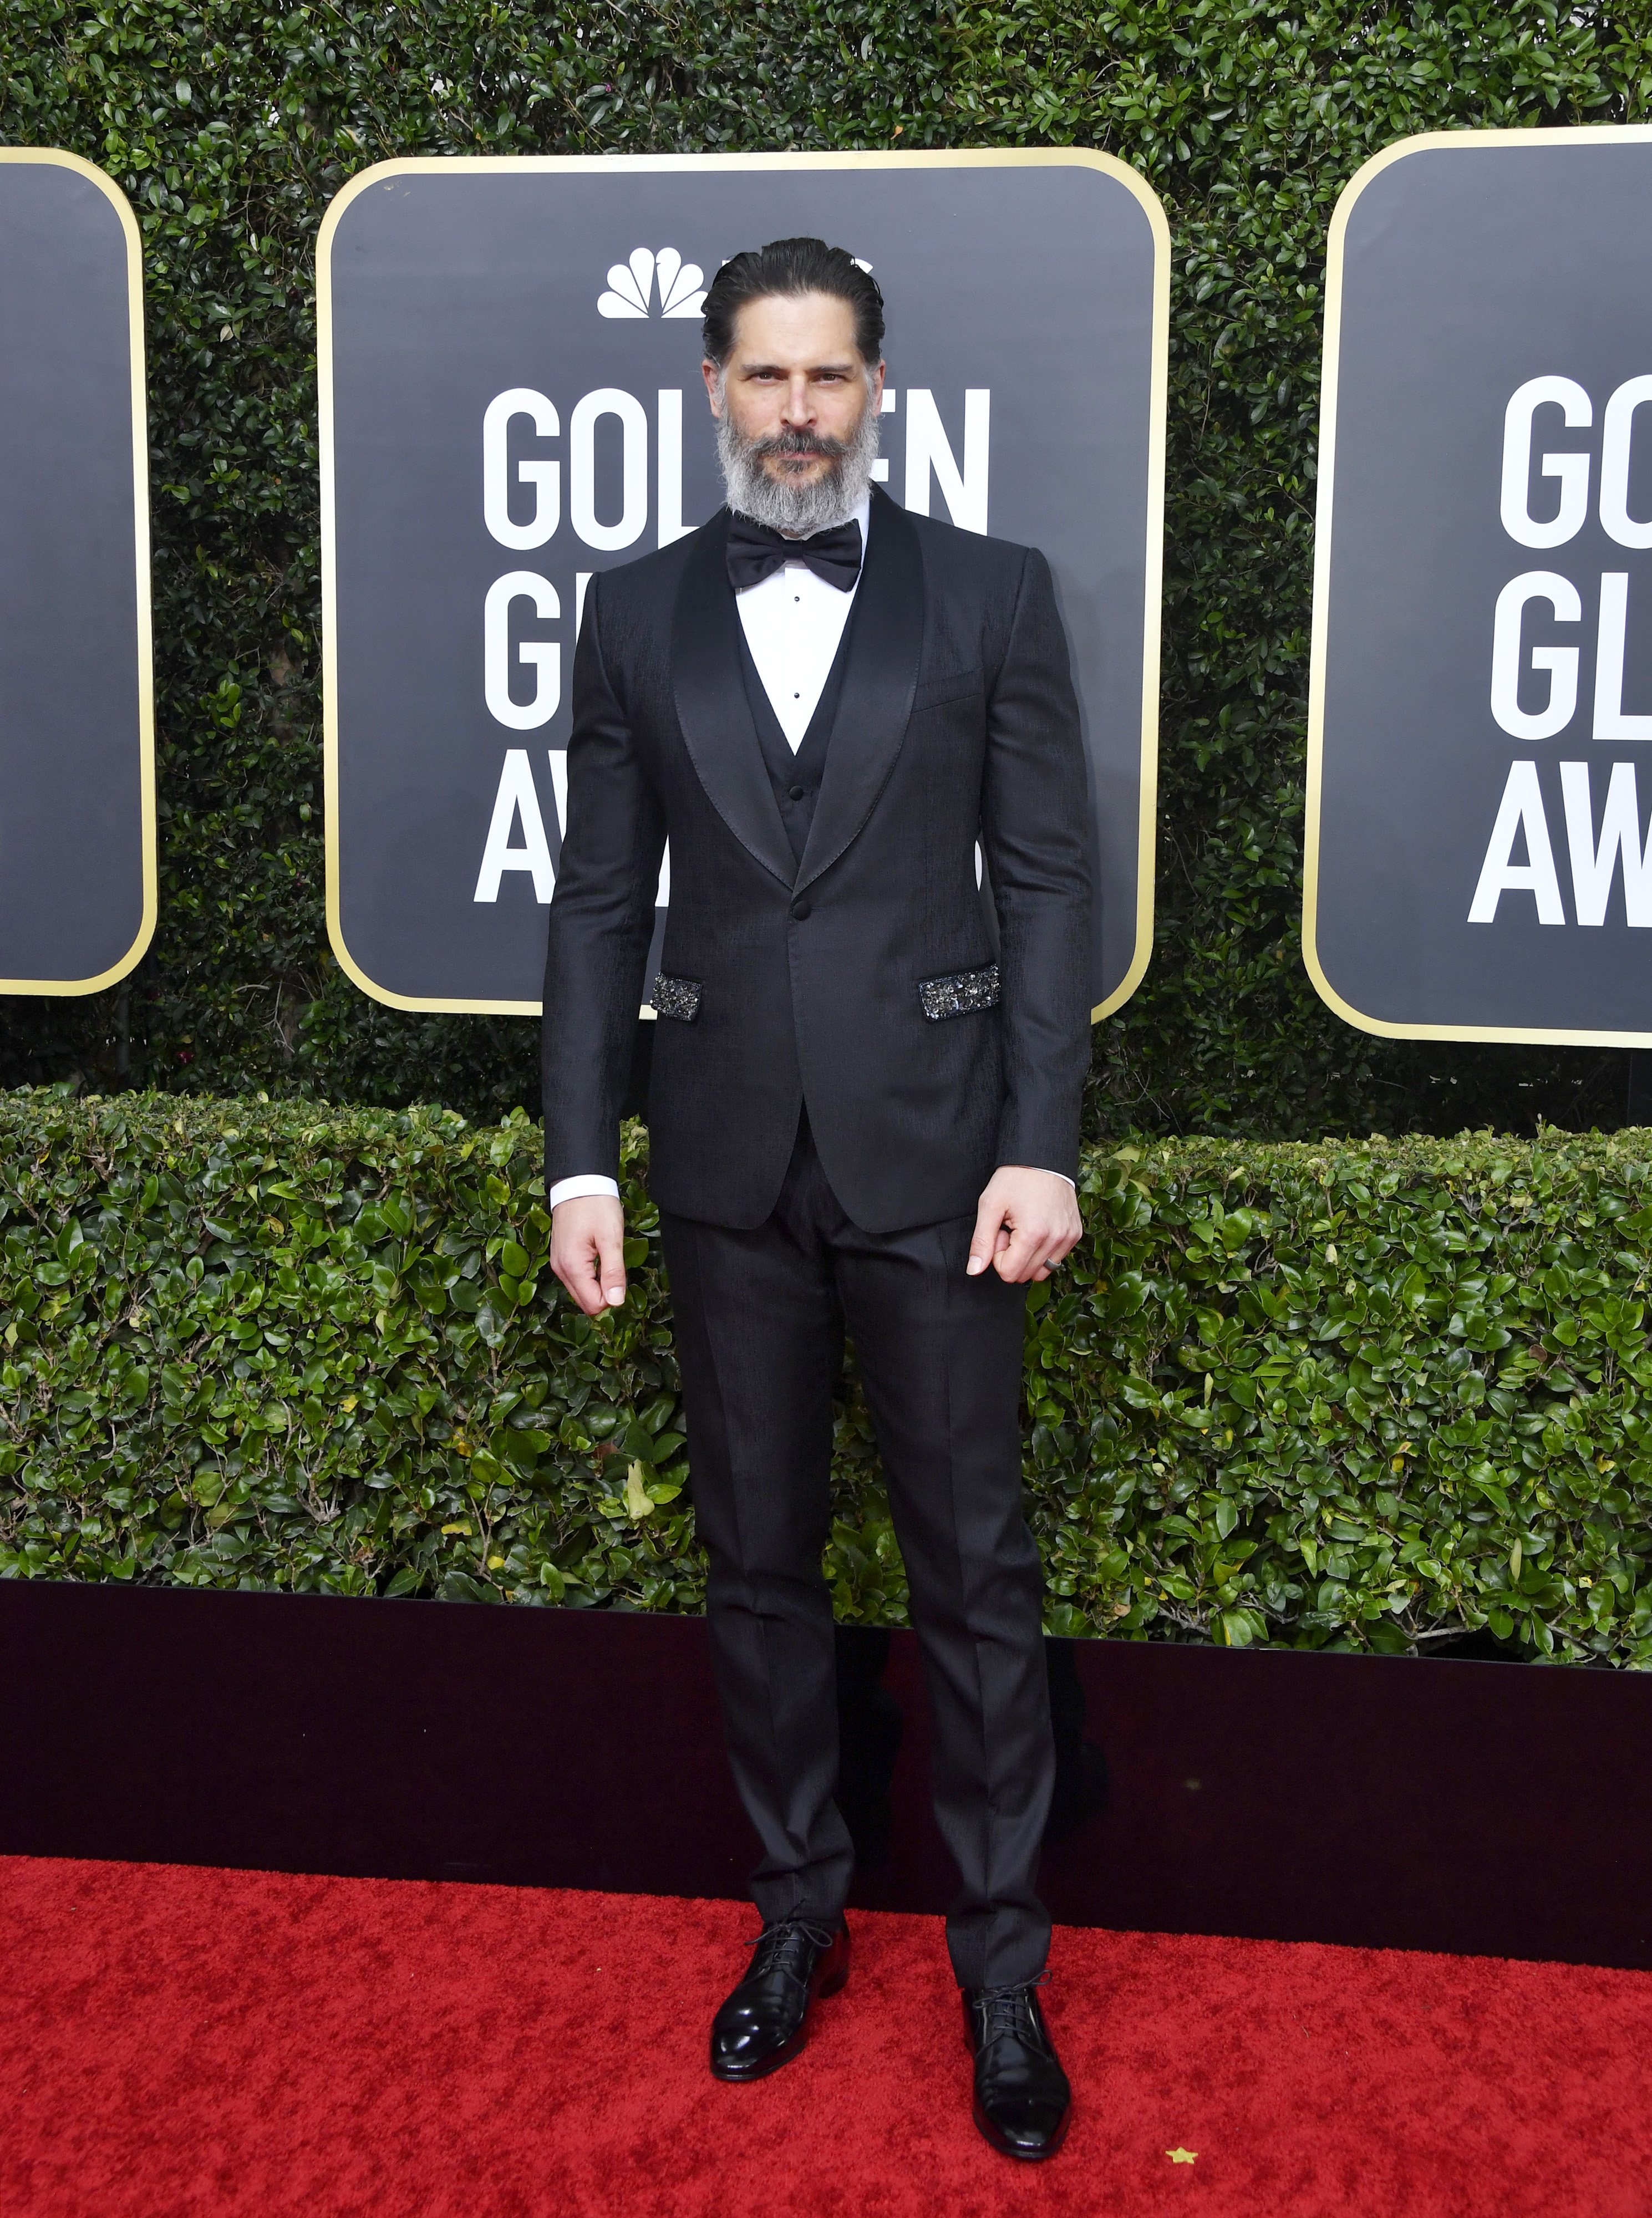 BEVERLY HILLS, CALIFORNIA - JANUARY 05: Joe Manganiello attends the 77th Annual Golden Globe Awards at The Beverly Hilton Hotel on January 05, 2020 in Beverly Hills, California. (Photo by Frazer Harrison/Getty Images)